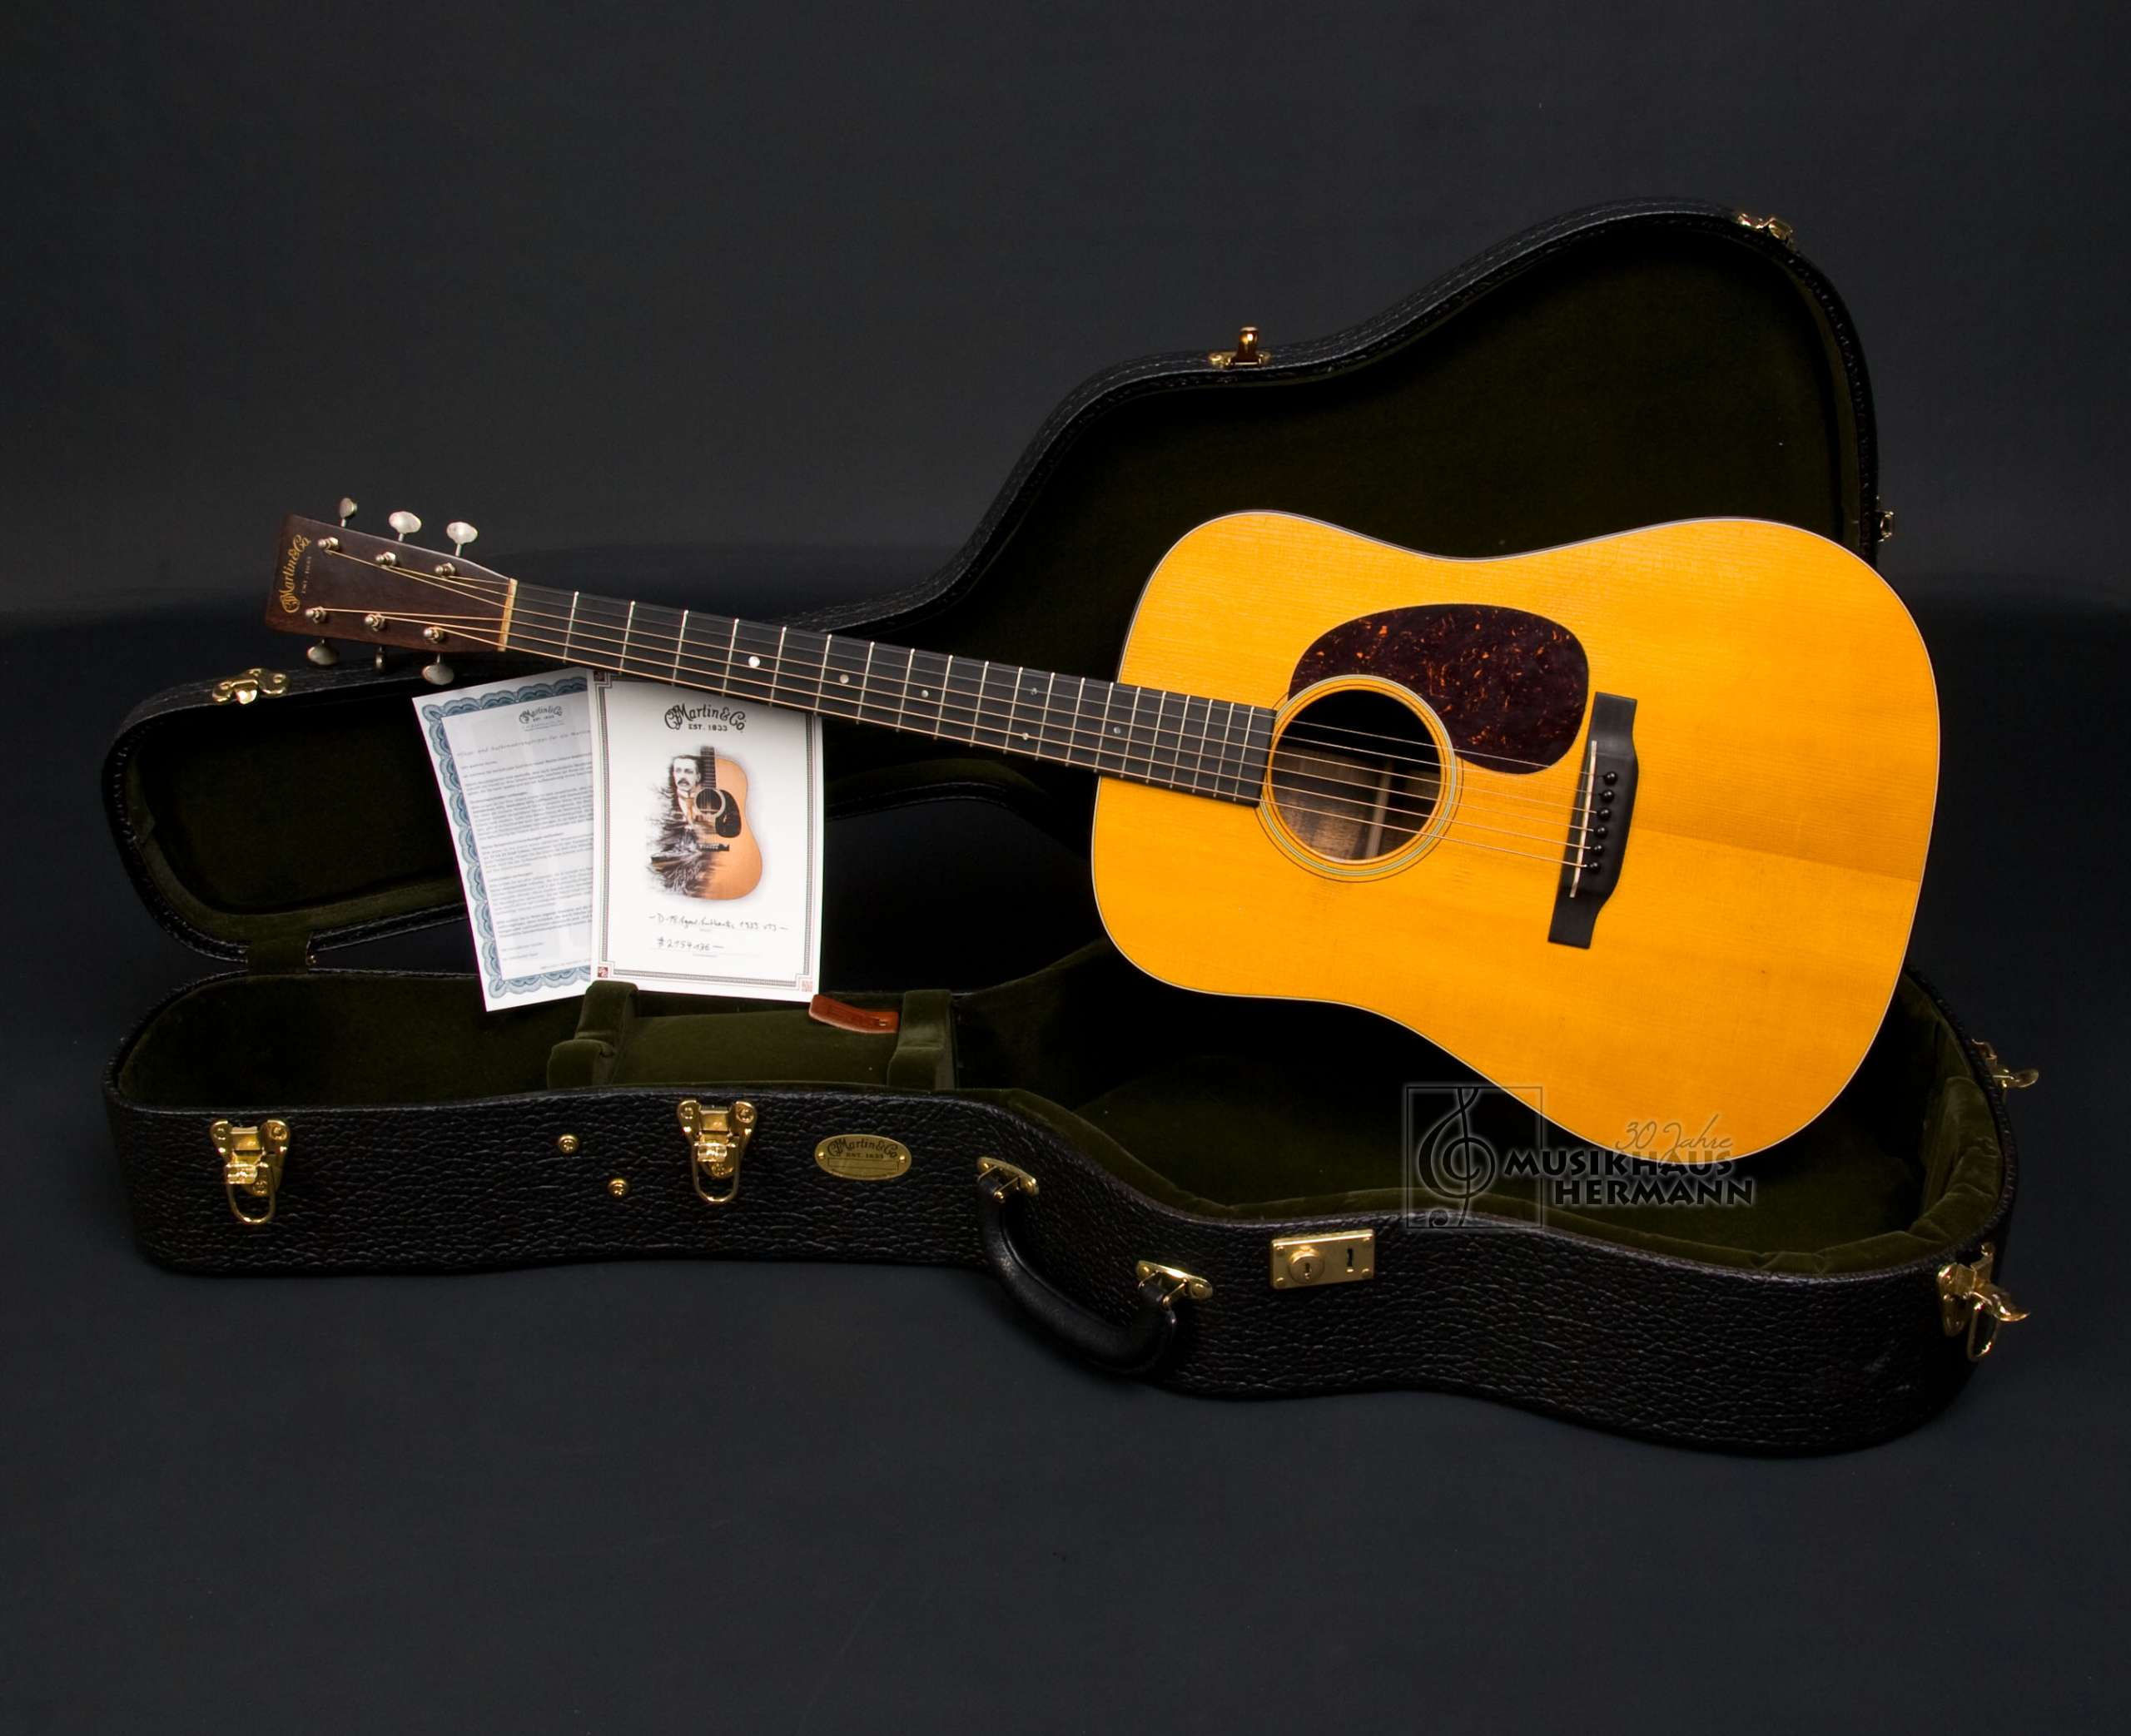 a6 6539 Martin D18 Aged Authentic 1939 VTS 1280x1280 2x